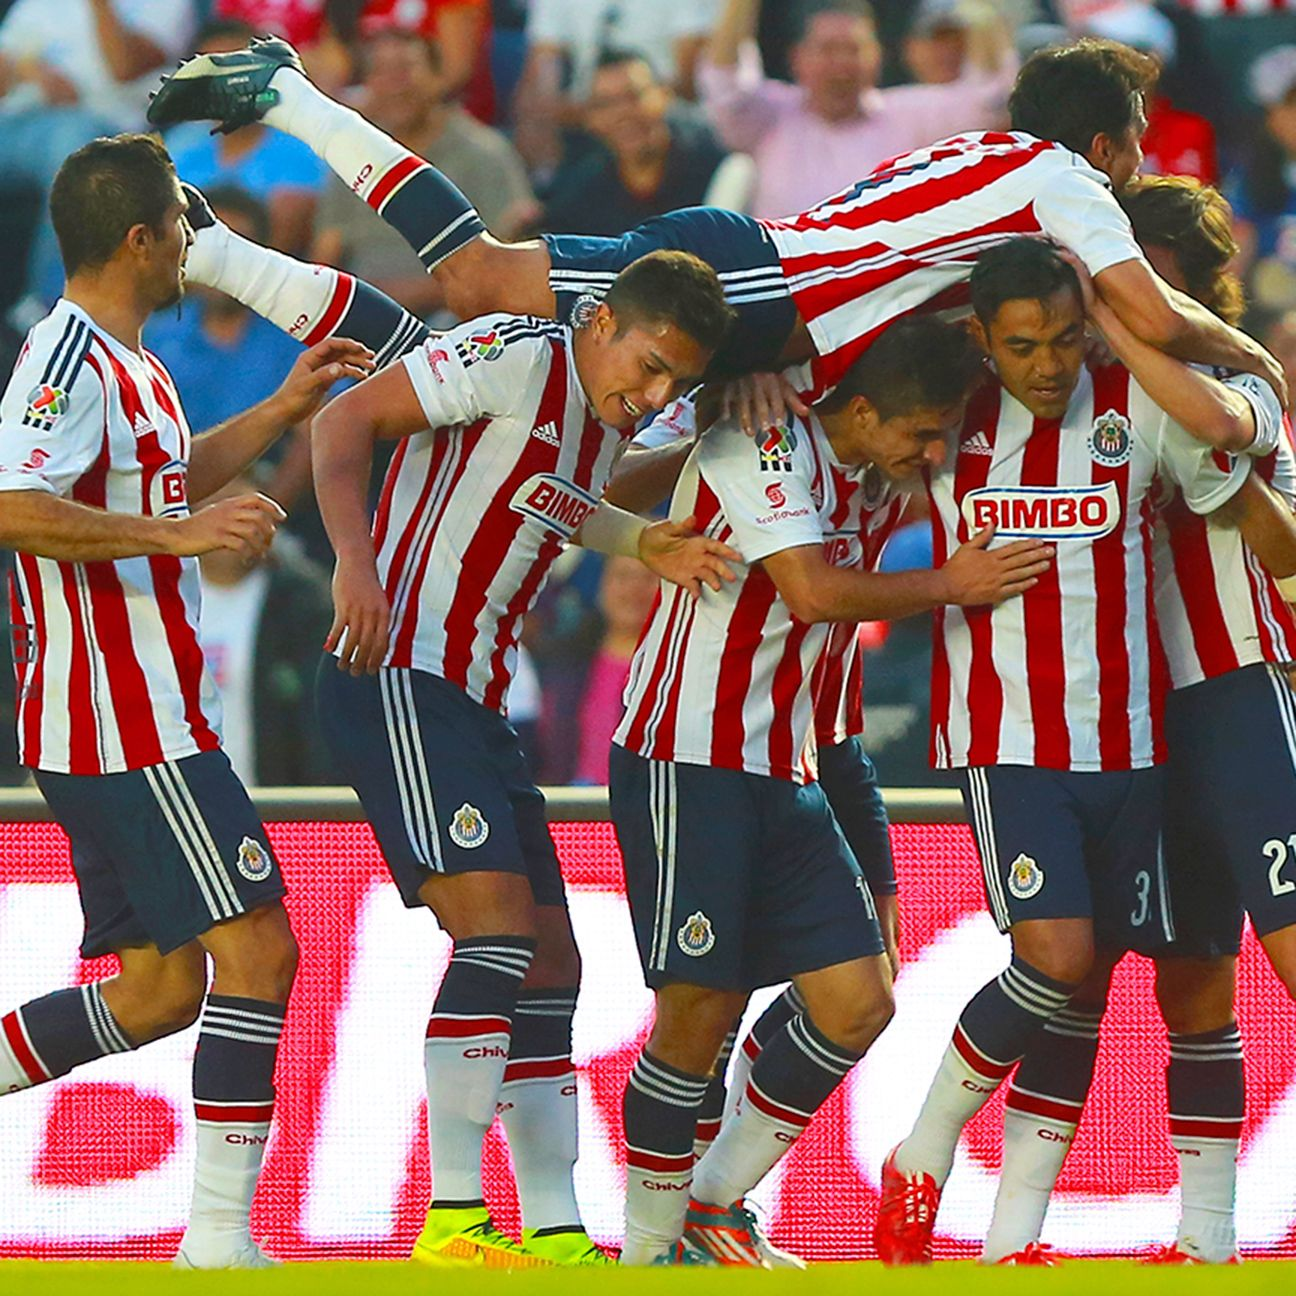 Chivas are on a high following their stunning comeback win at Cruz Azul.